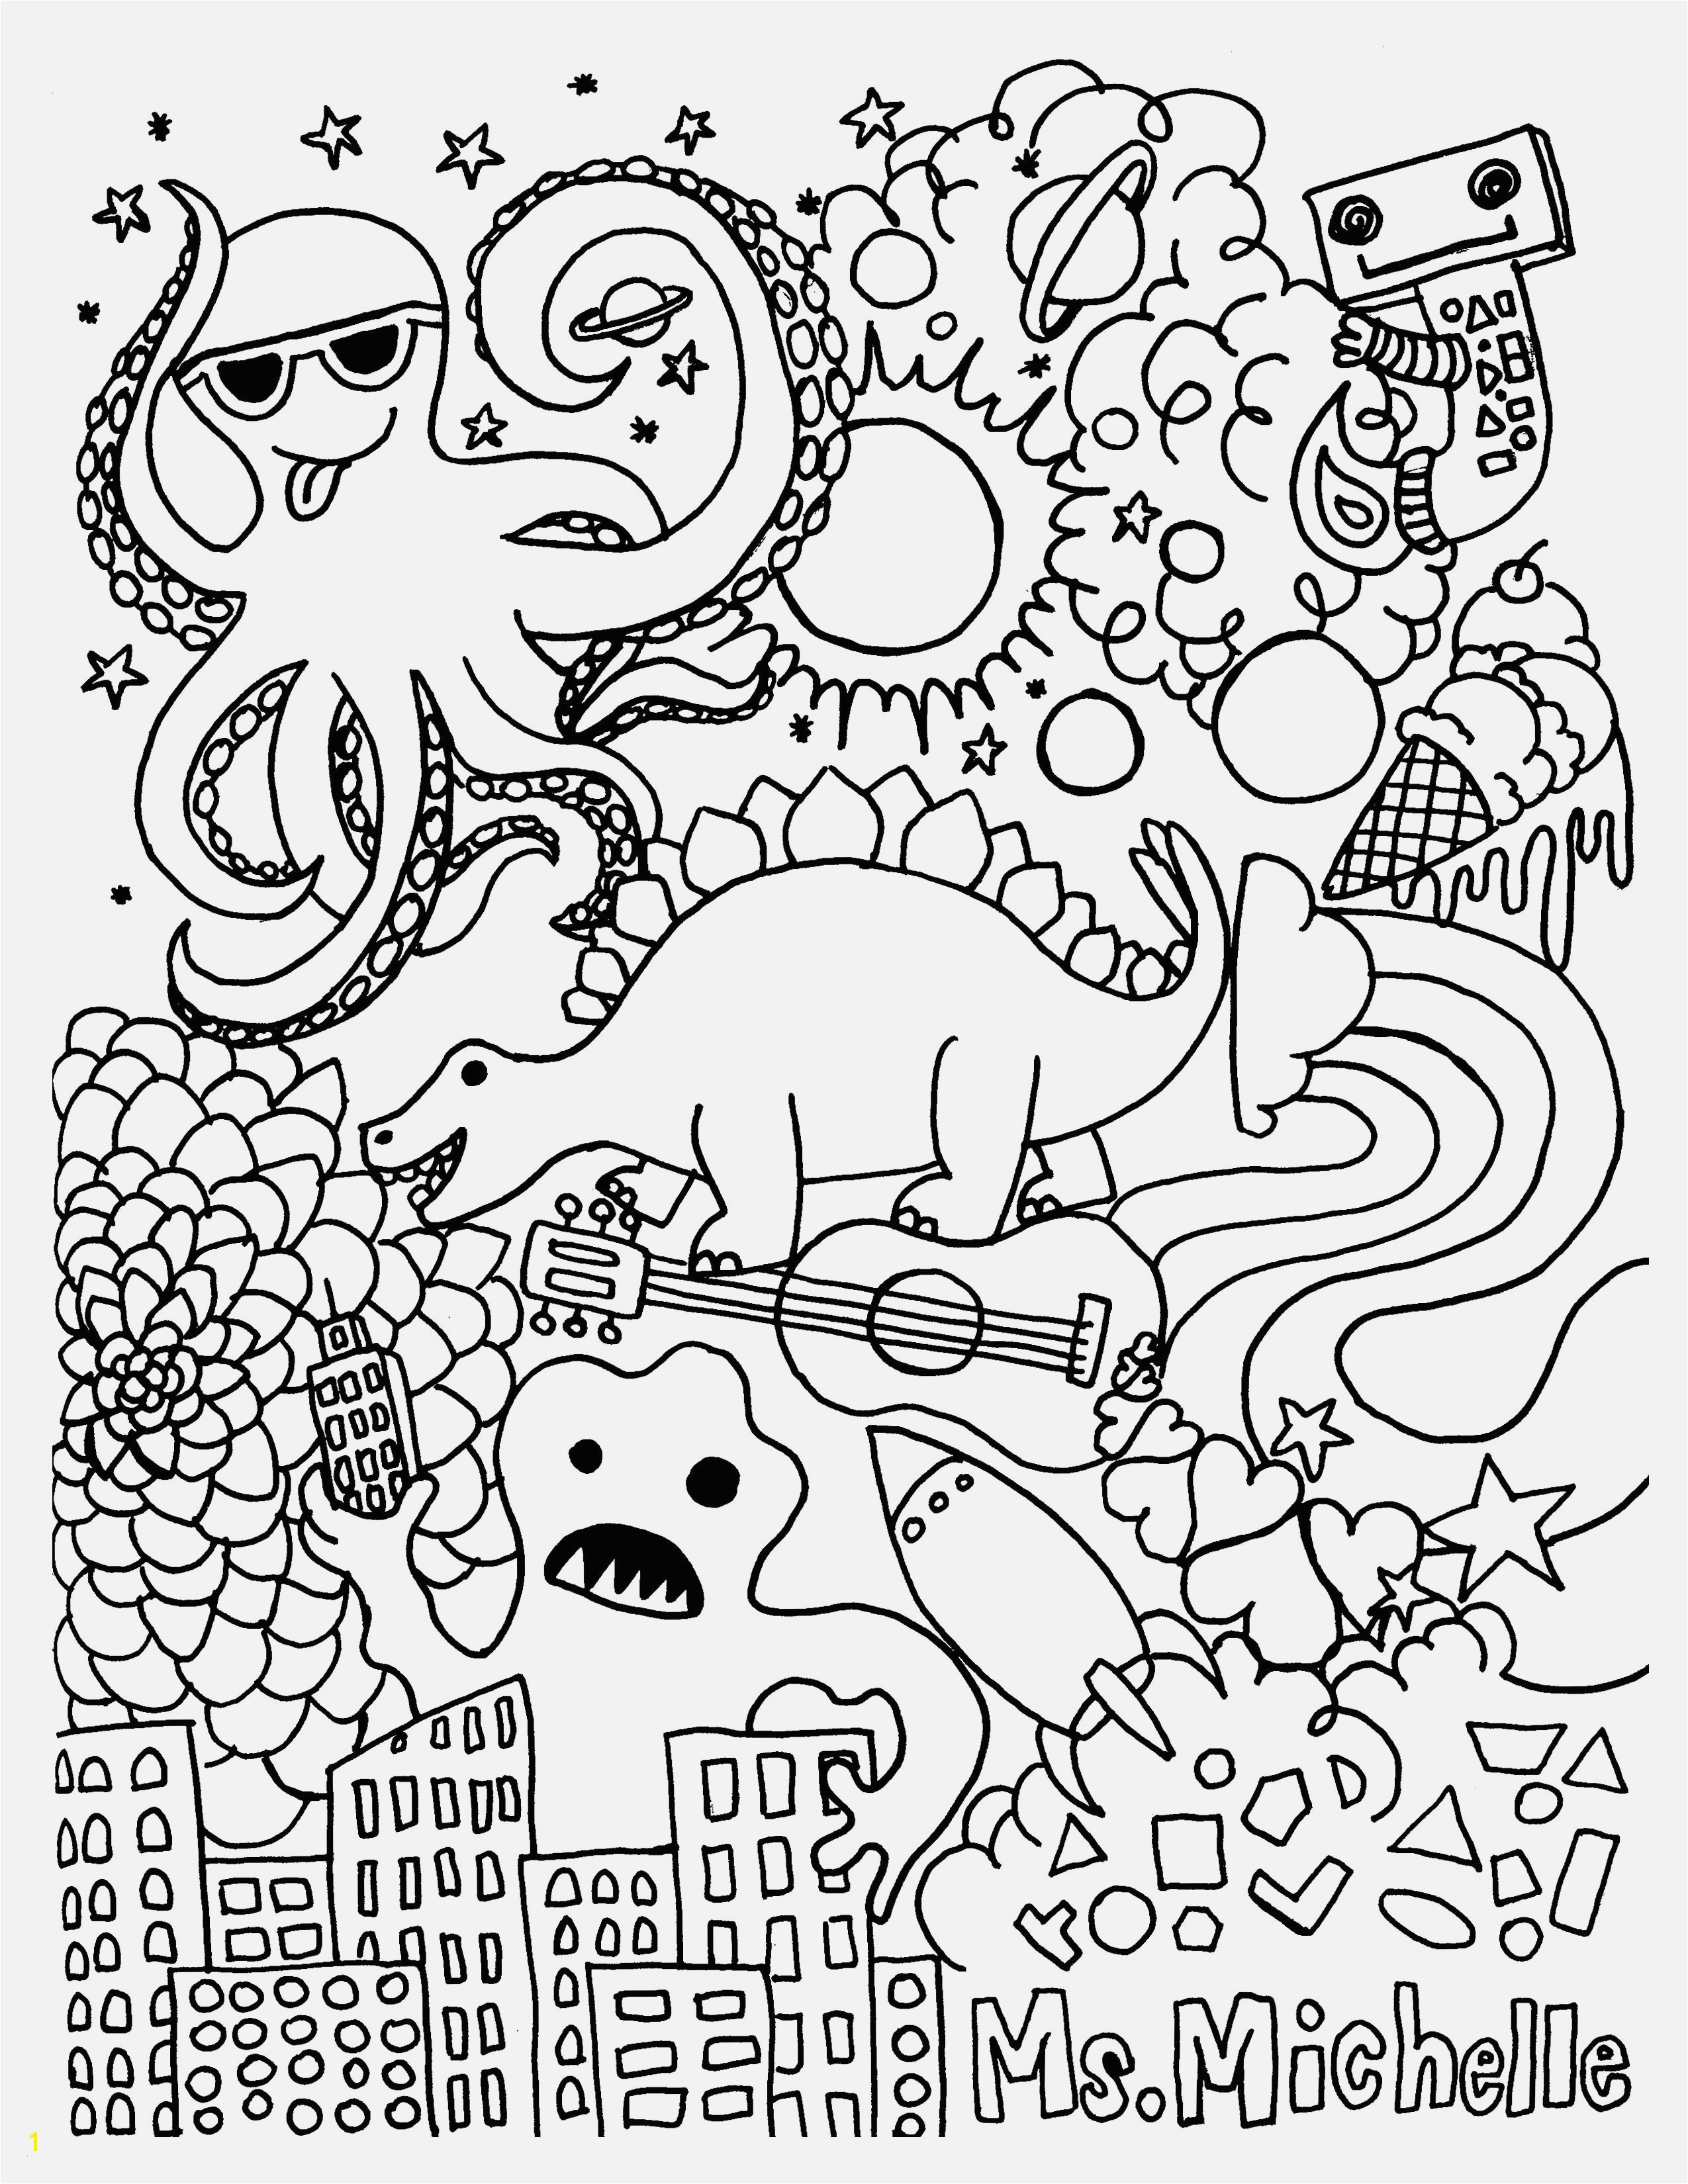 Easy Adult Coloring Pages Free Coloring Pages for Children Best Free Coloring Pages for Easy